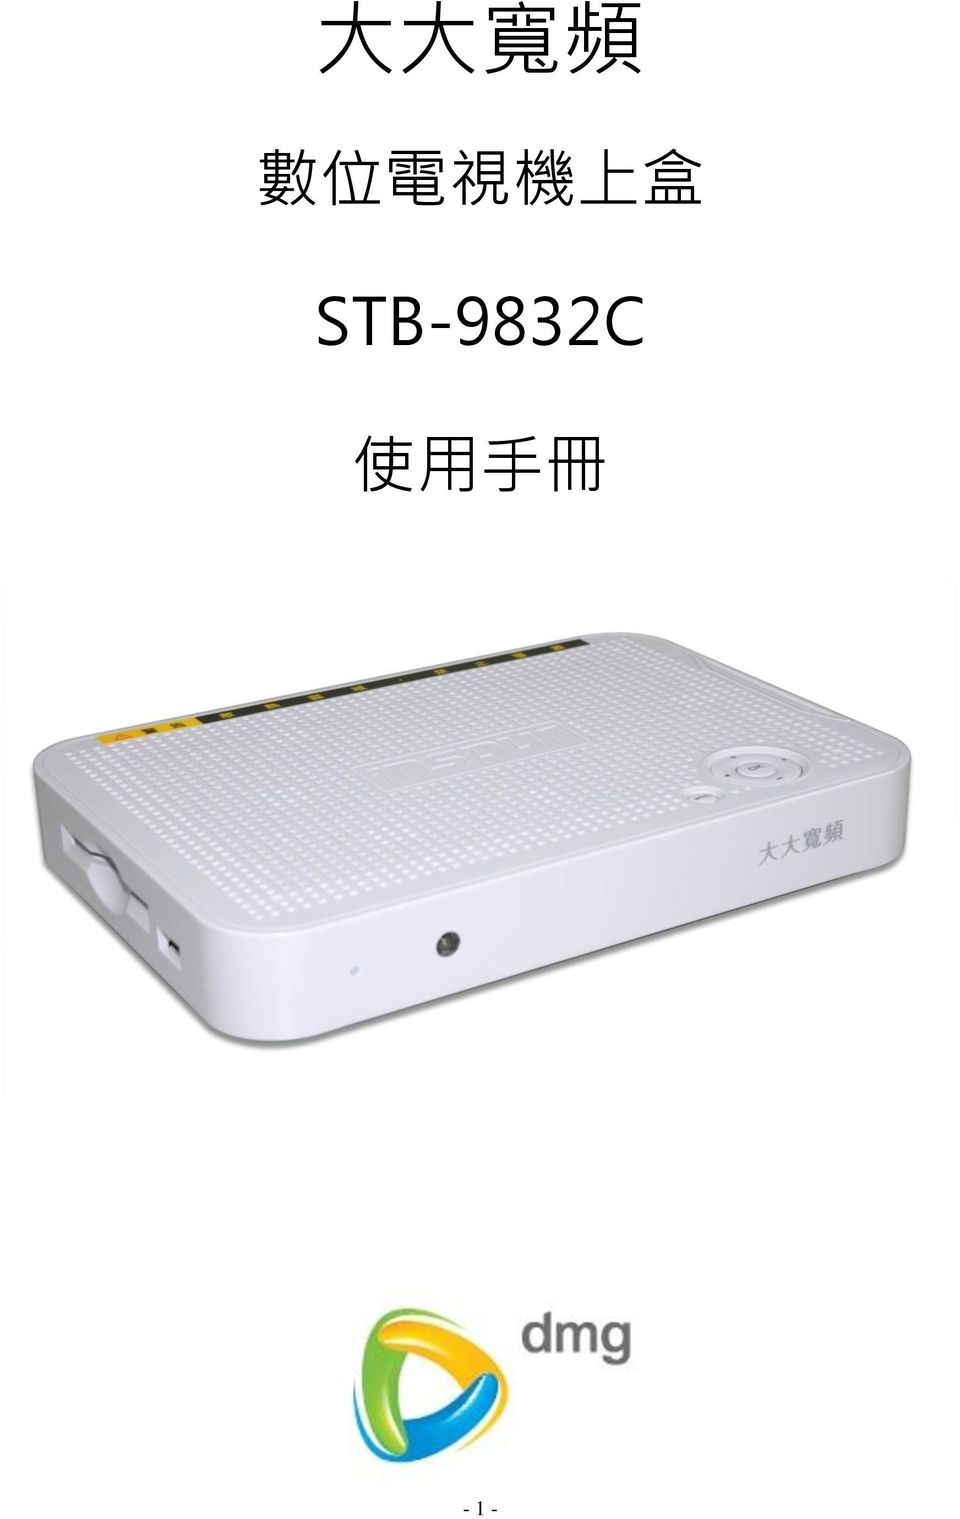 STB-9832C 使